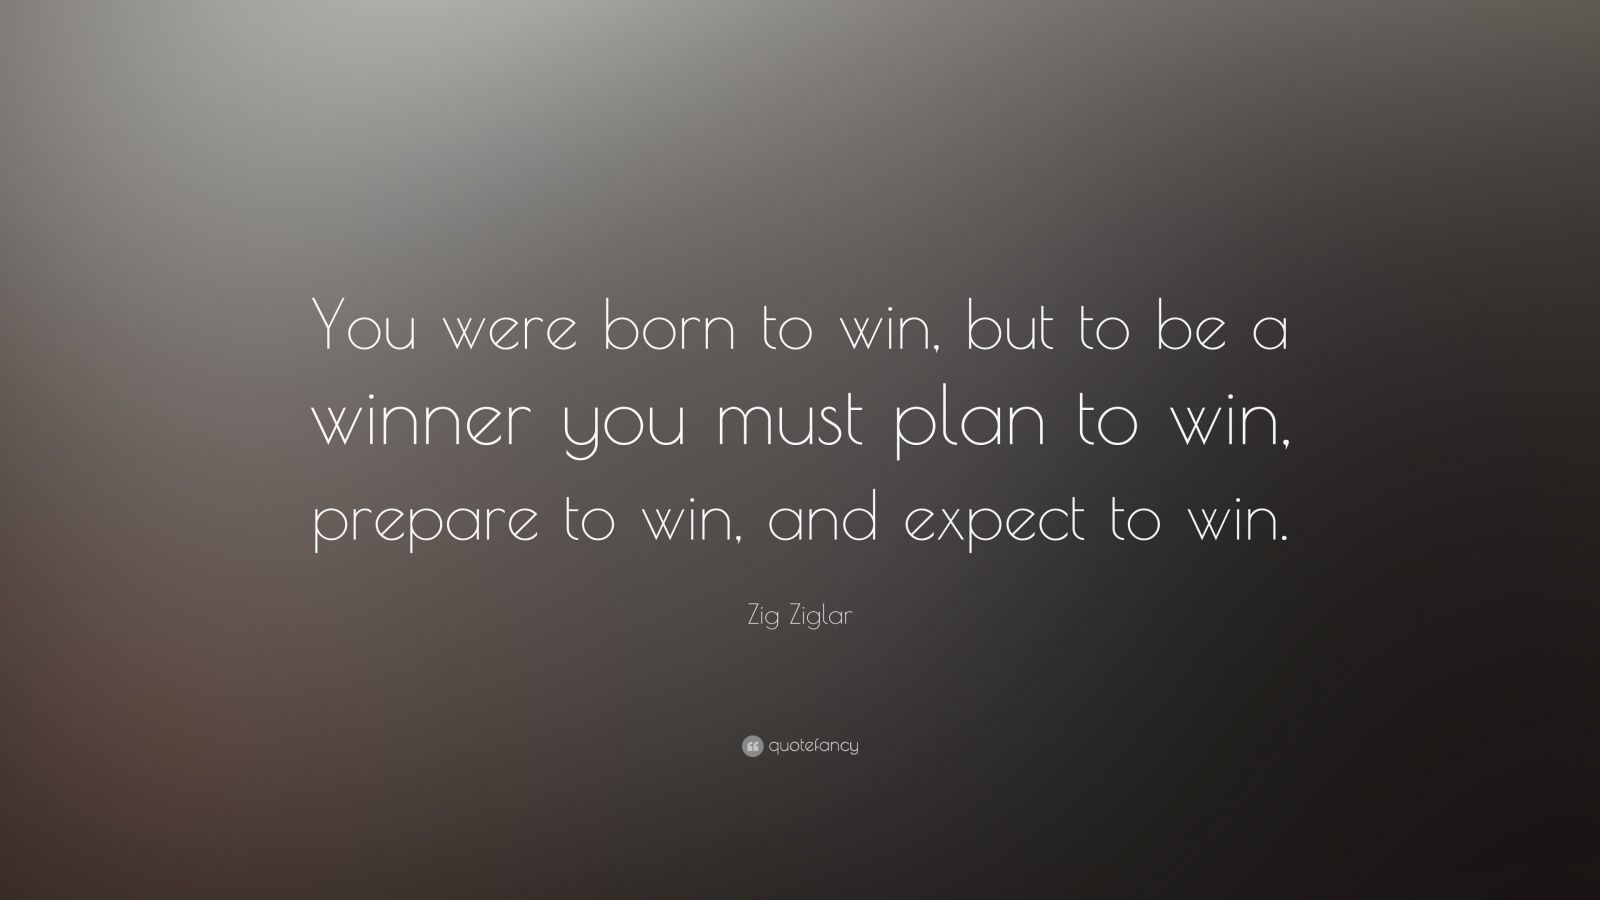 Quotes Zig Ziglar Born To Win Quote Picture  Inspiring Quotes And Words In Life